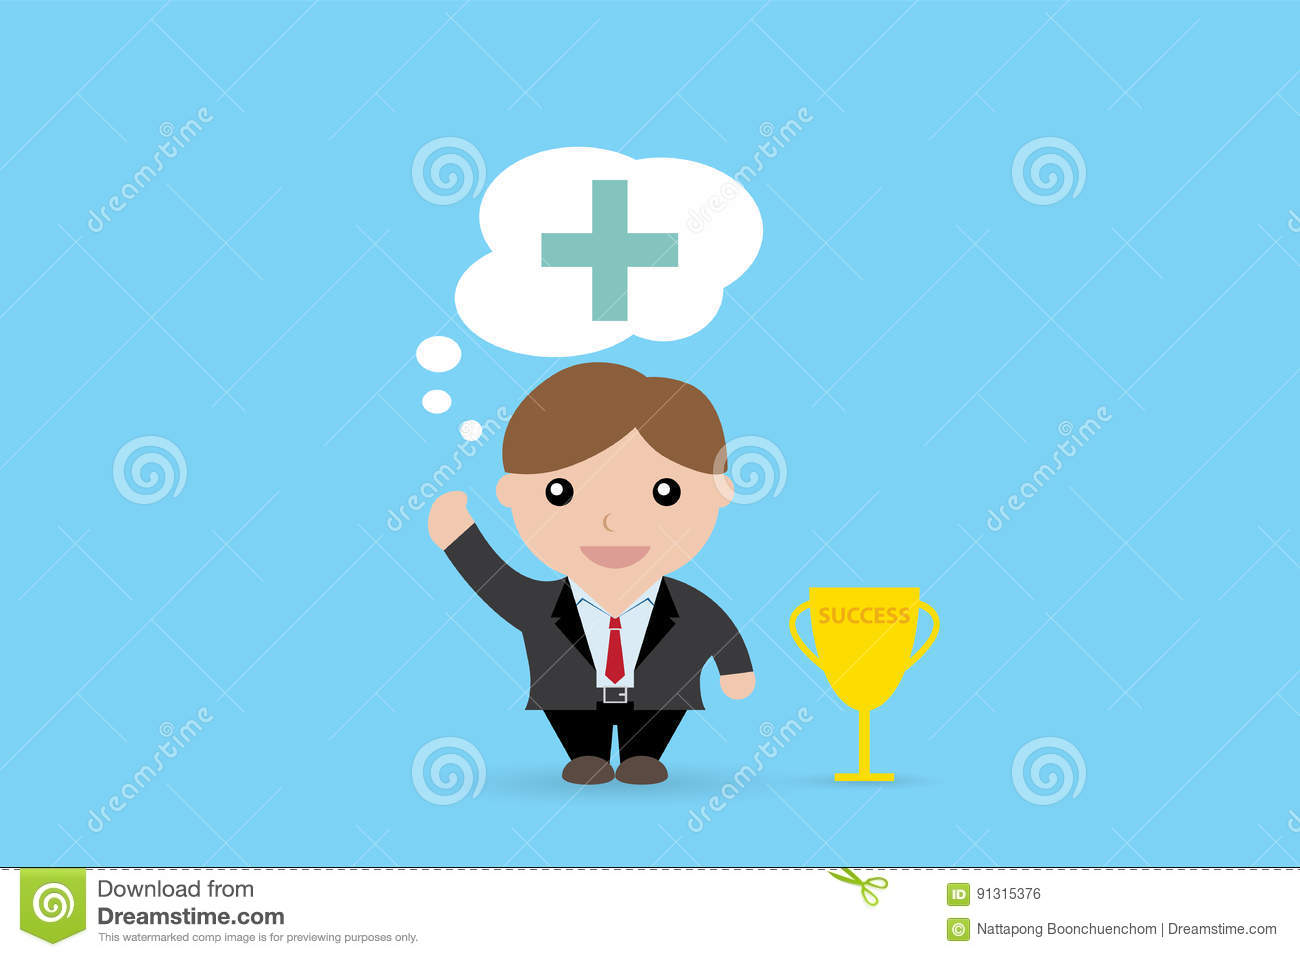 Businessman thinking with a big plus sign and trophy cup, positive thinking, Business concept